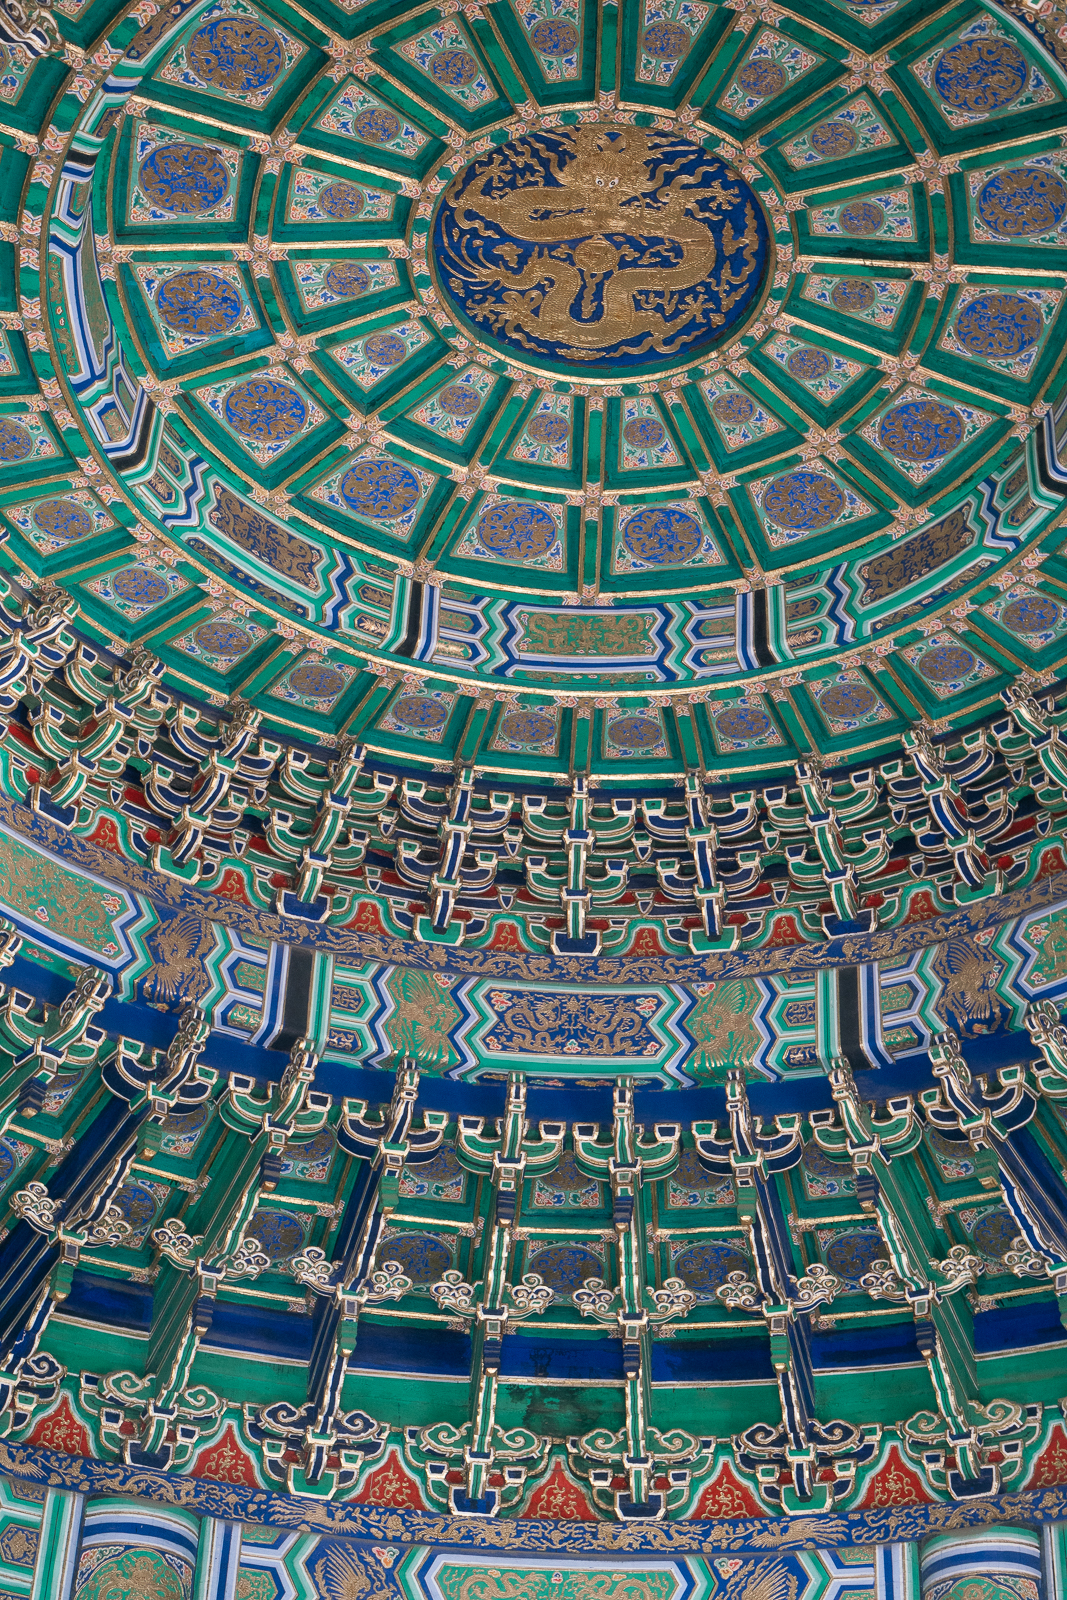 Temple of Heaven - interior